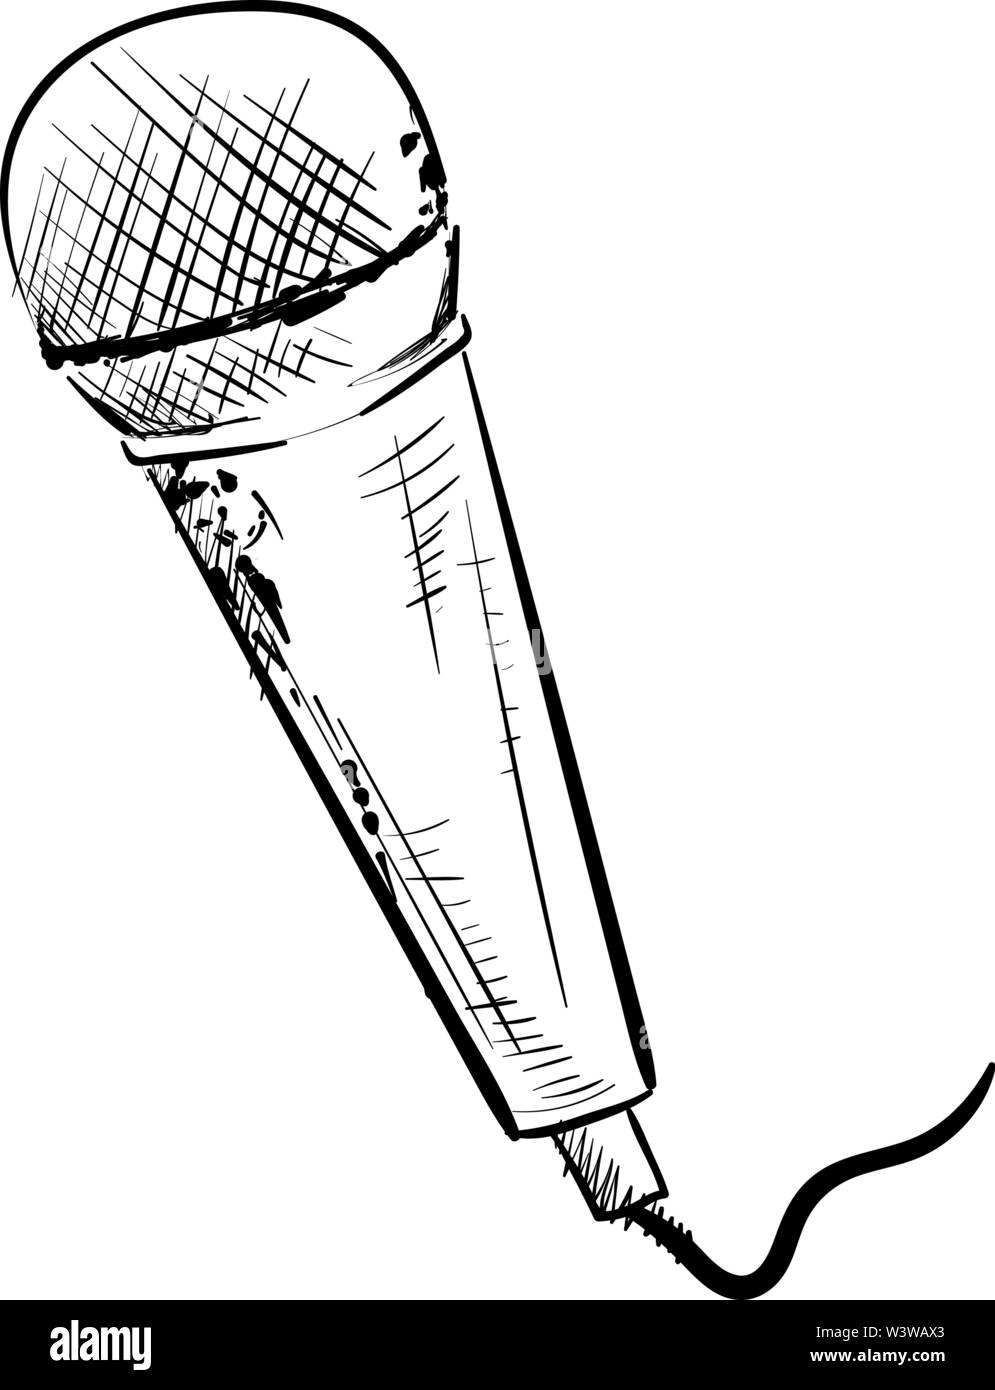 Microphone Drawing Illustration Vector On White Background Stock Vector Image Art Alamy Available for download and commercial use. https www alamy com microphone drawing illustration vector on white background image260556859 html